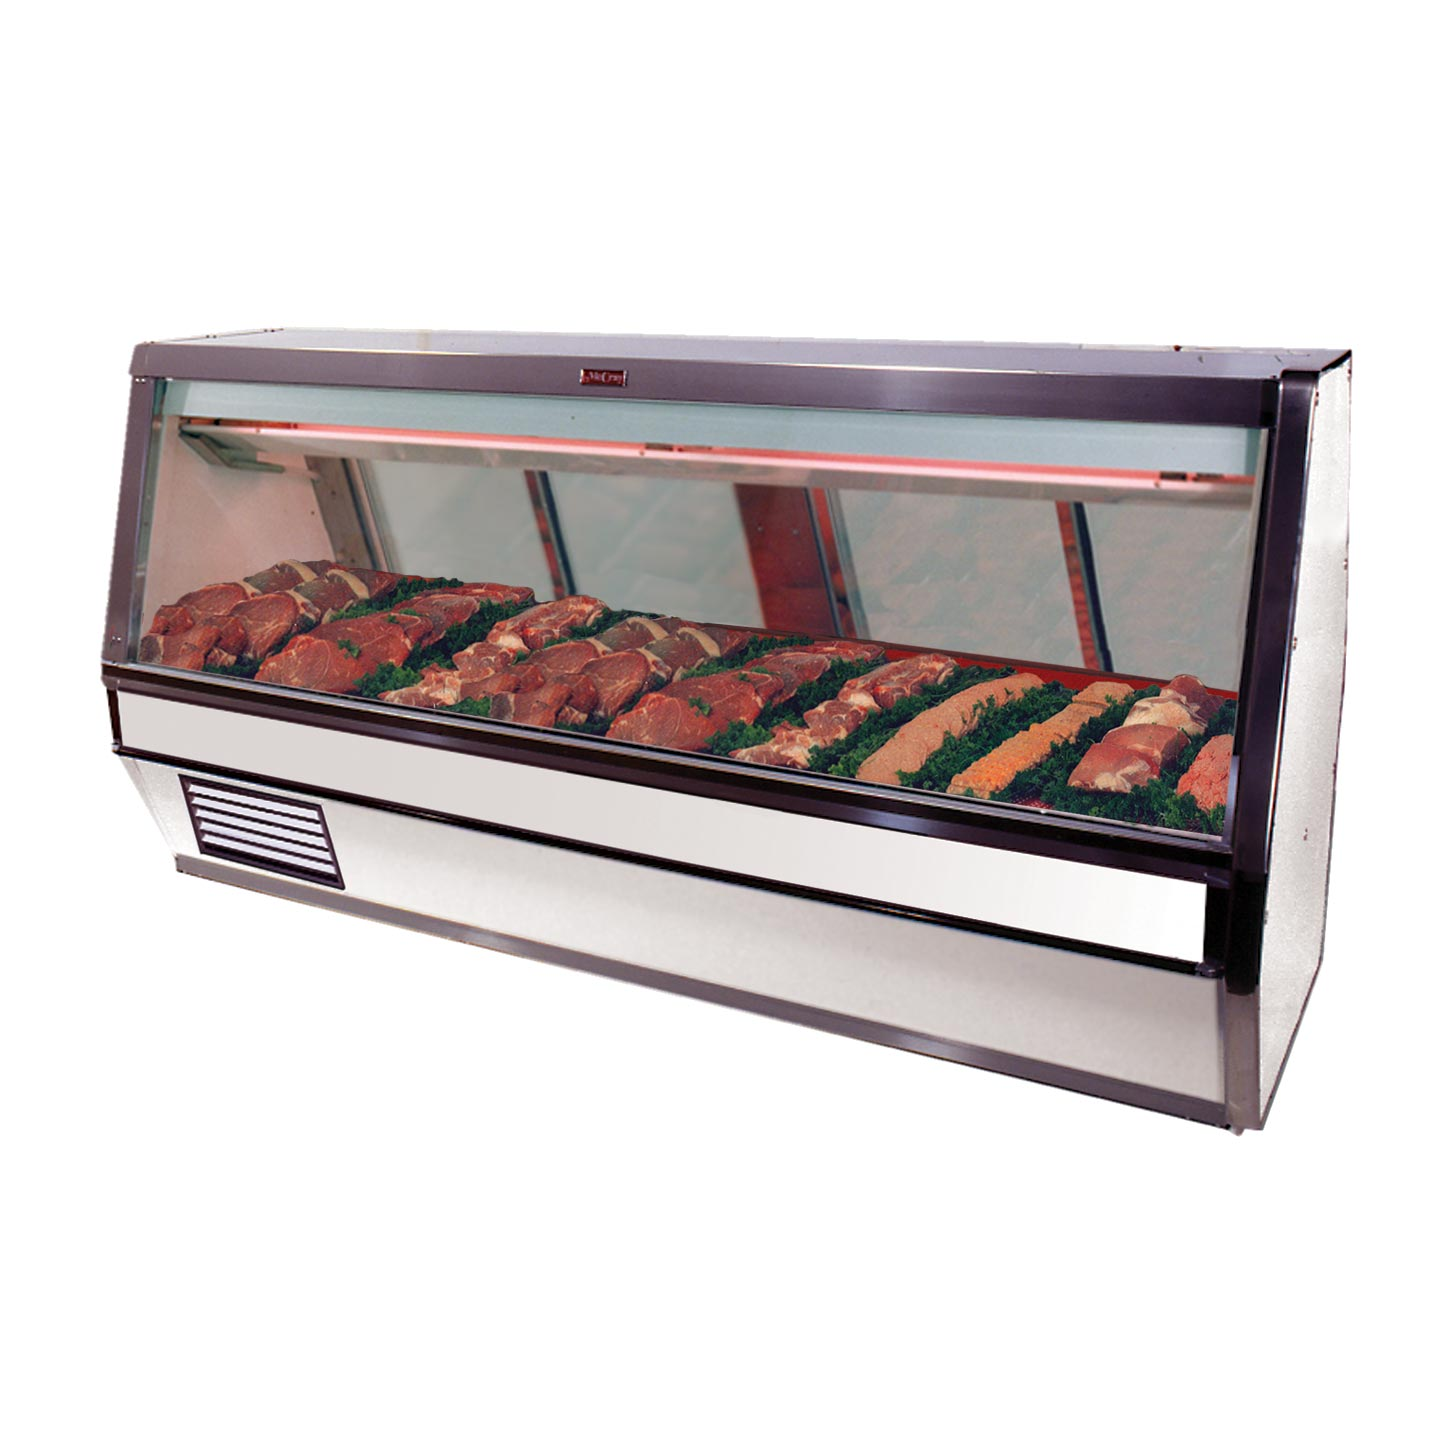 Howard-McCray R-CMS40E-6-S-LED display case, red meat deli